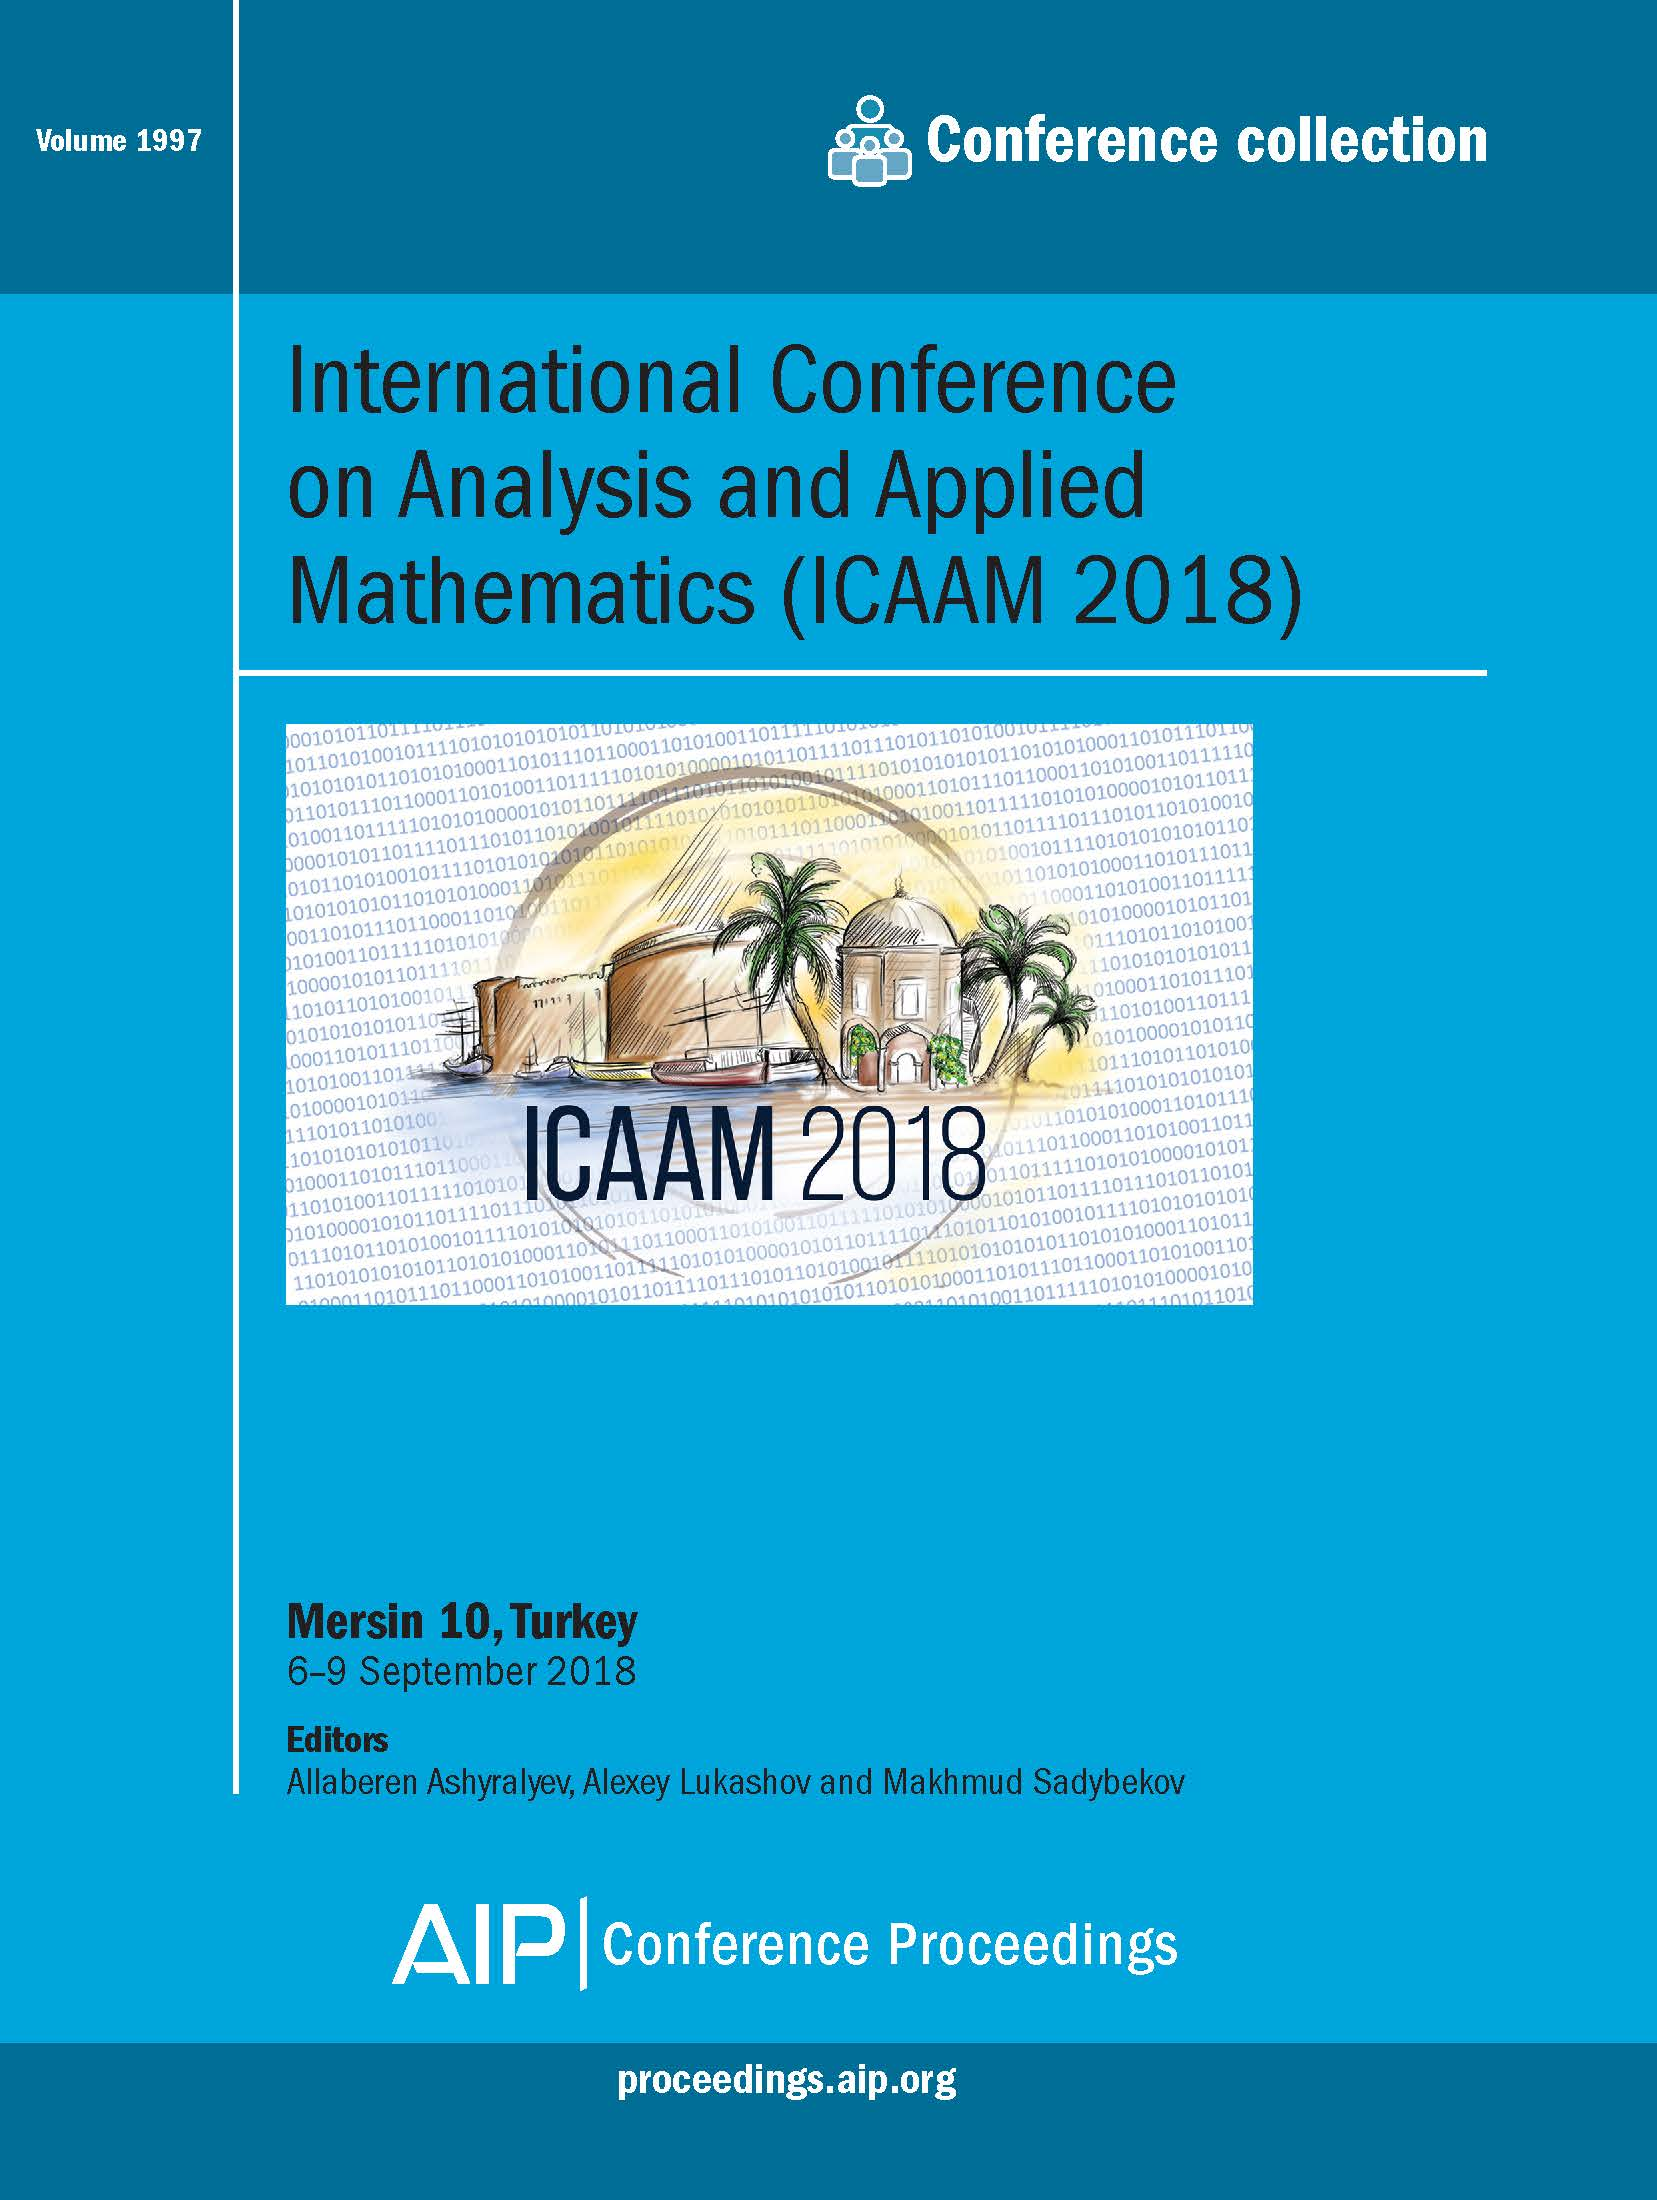 Volume 1997: International Conference on Analysis and Applied